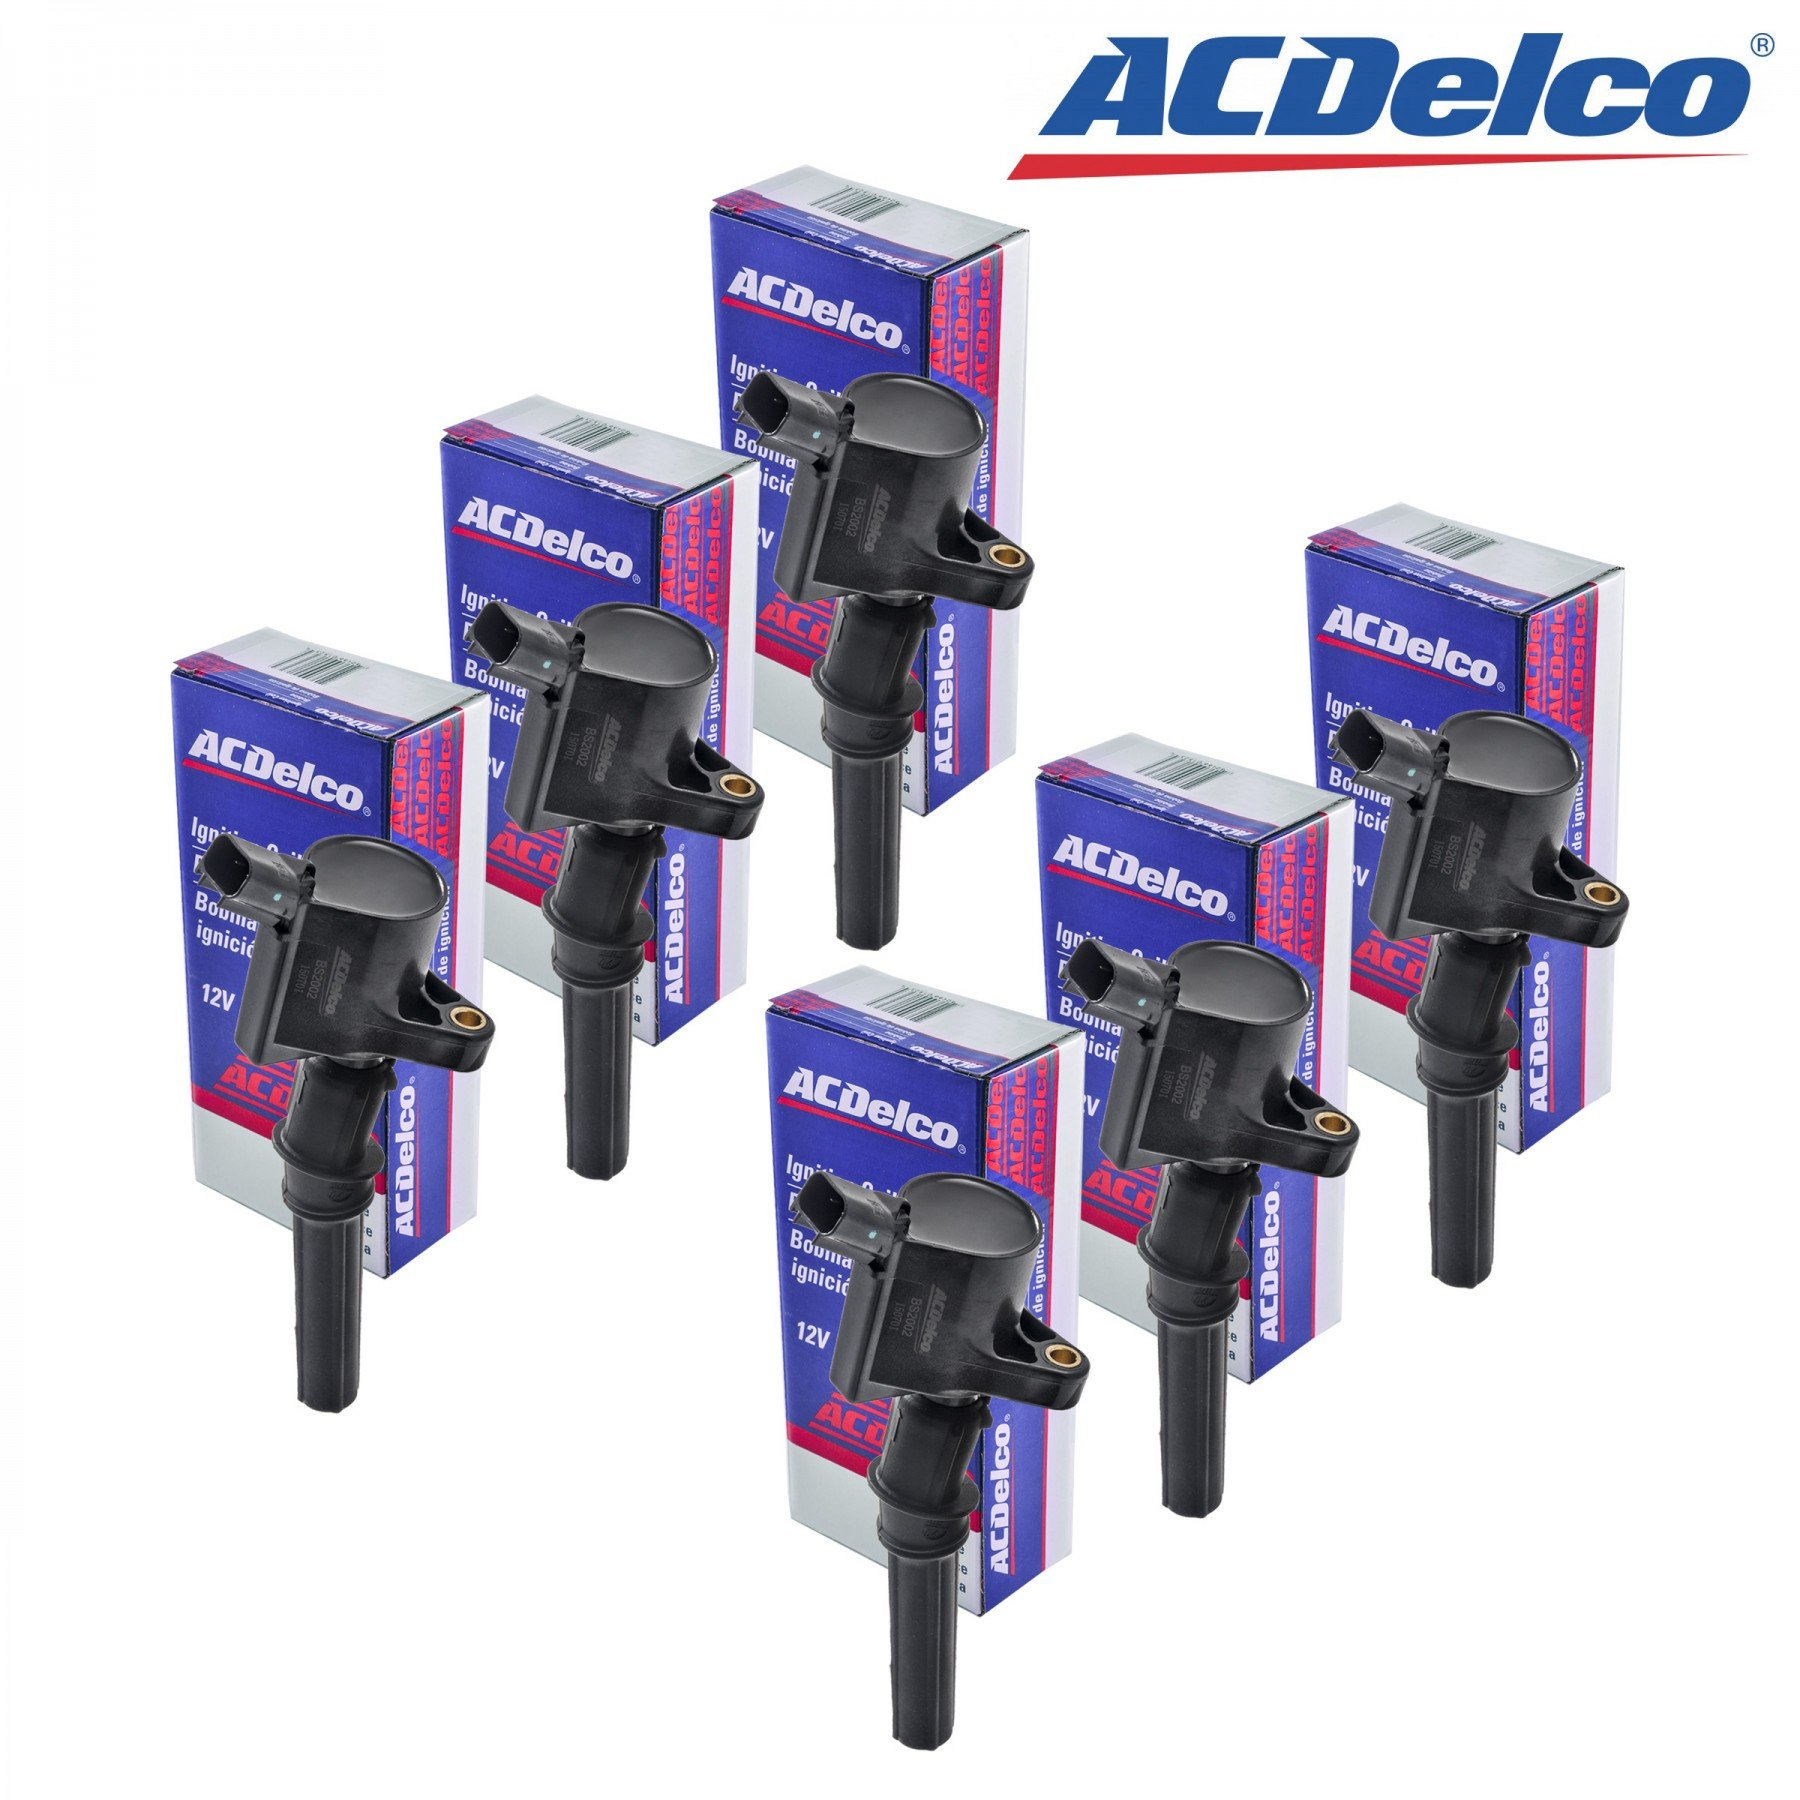 New ACDelco Ignition Coil Set (6) 1997 1998 1999 2000 2001 2002 2003 2004 Ford F-150 V8-5.4L DG508 F523